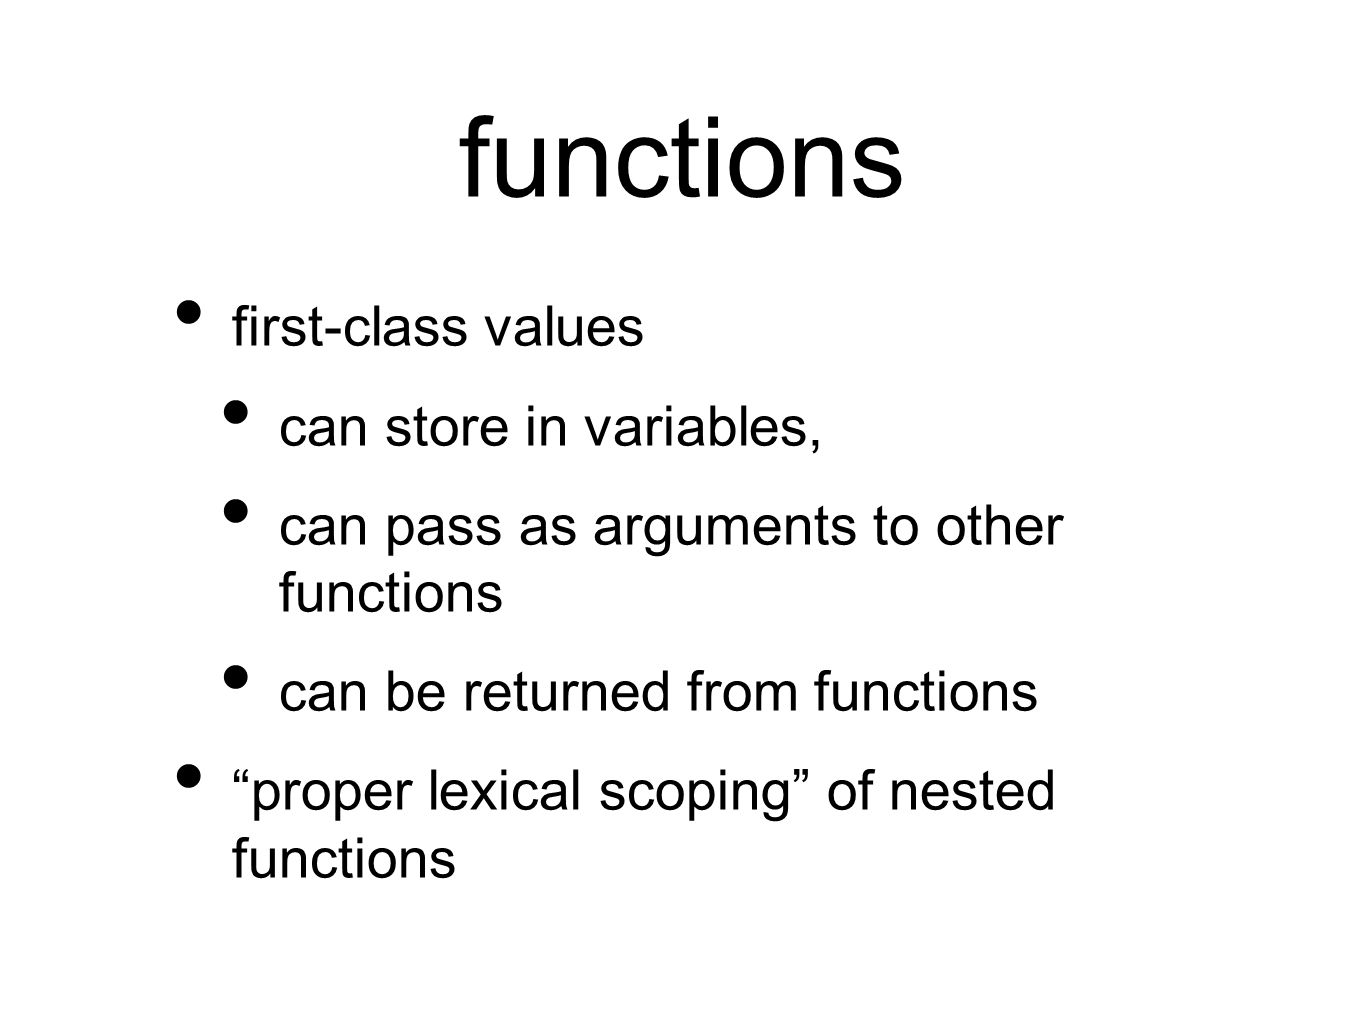 functions first-class values can store in variables, can pass as arguments to other functions can be returned from functions proper lexical scoping of nested functions